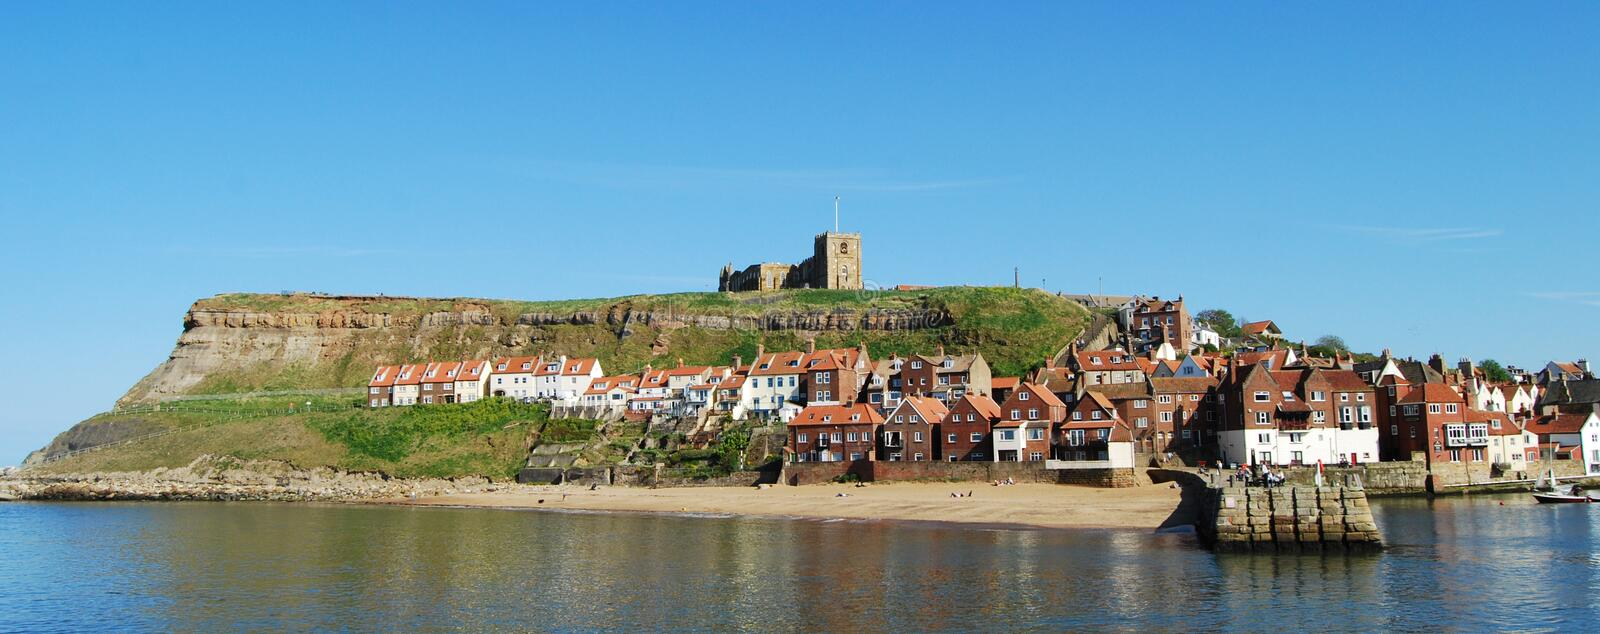 Whitby fishing town and Abbey, North Yorkshire. Whitby Abbey is a ruined Benedictine abbey overlooking the North Sea on the East Cliff above Whitby in North stock photo